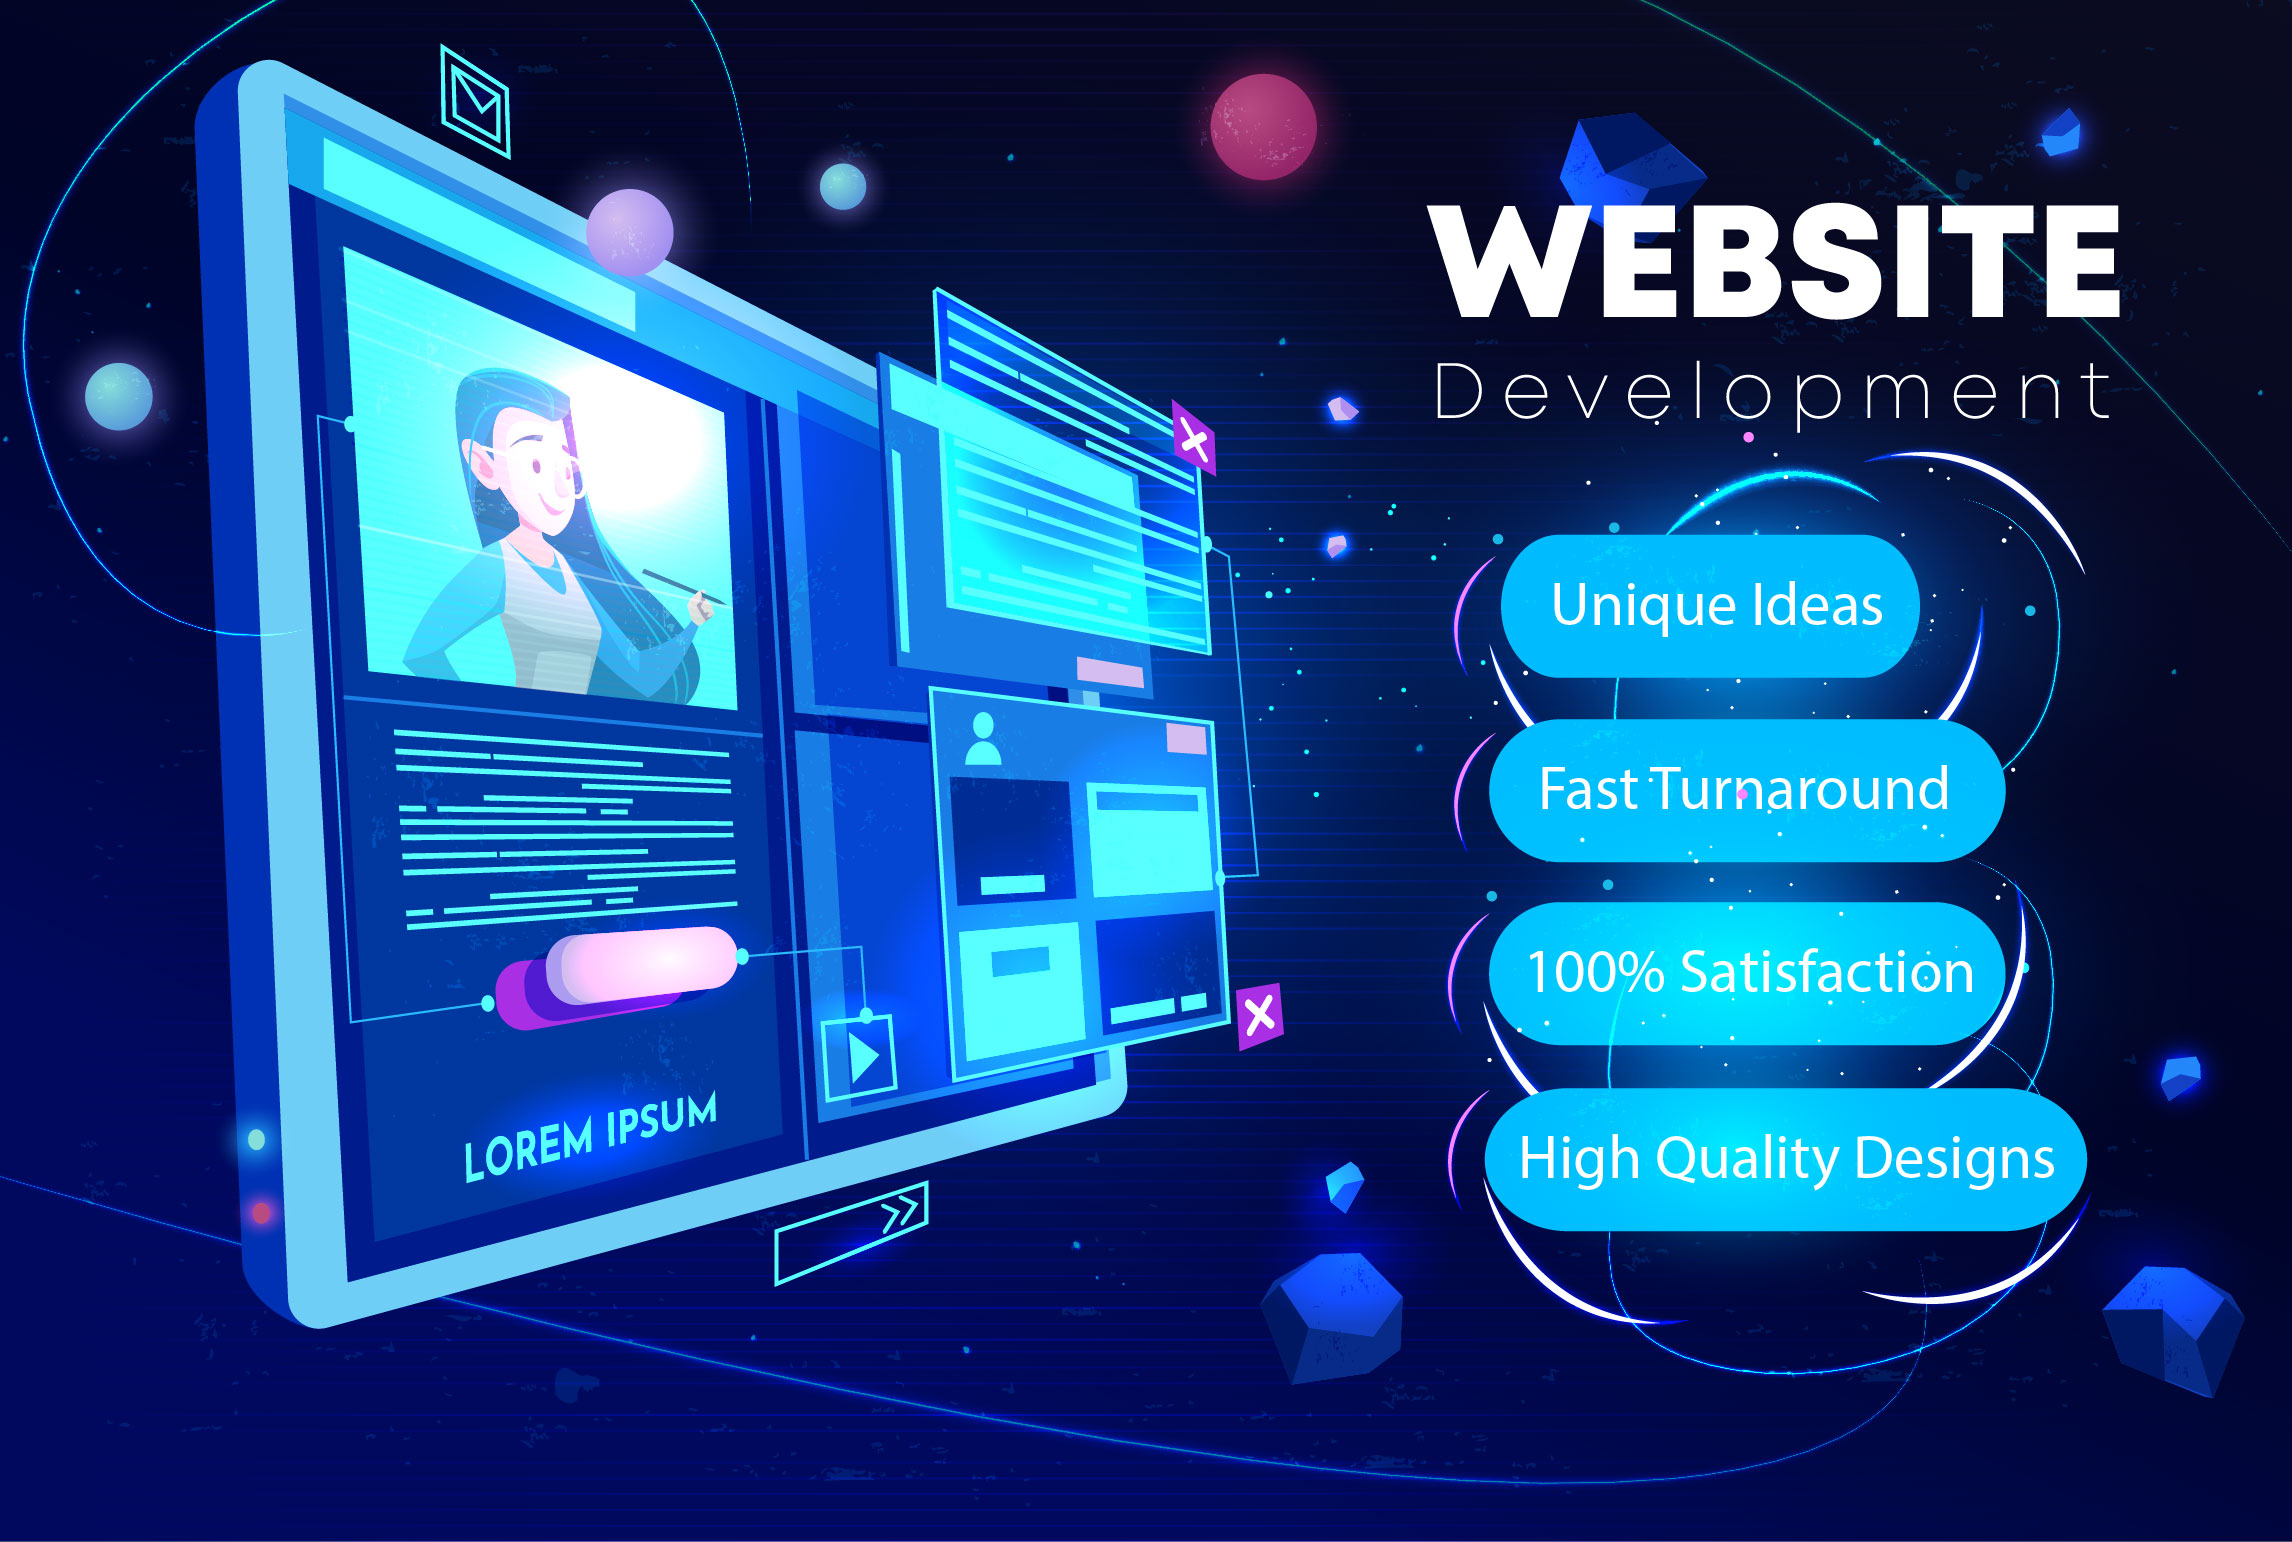 I will create a professional responsive WordPress website design